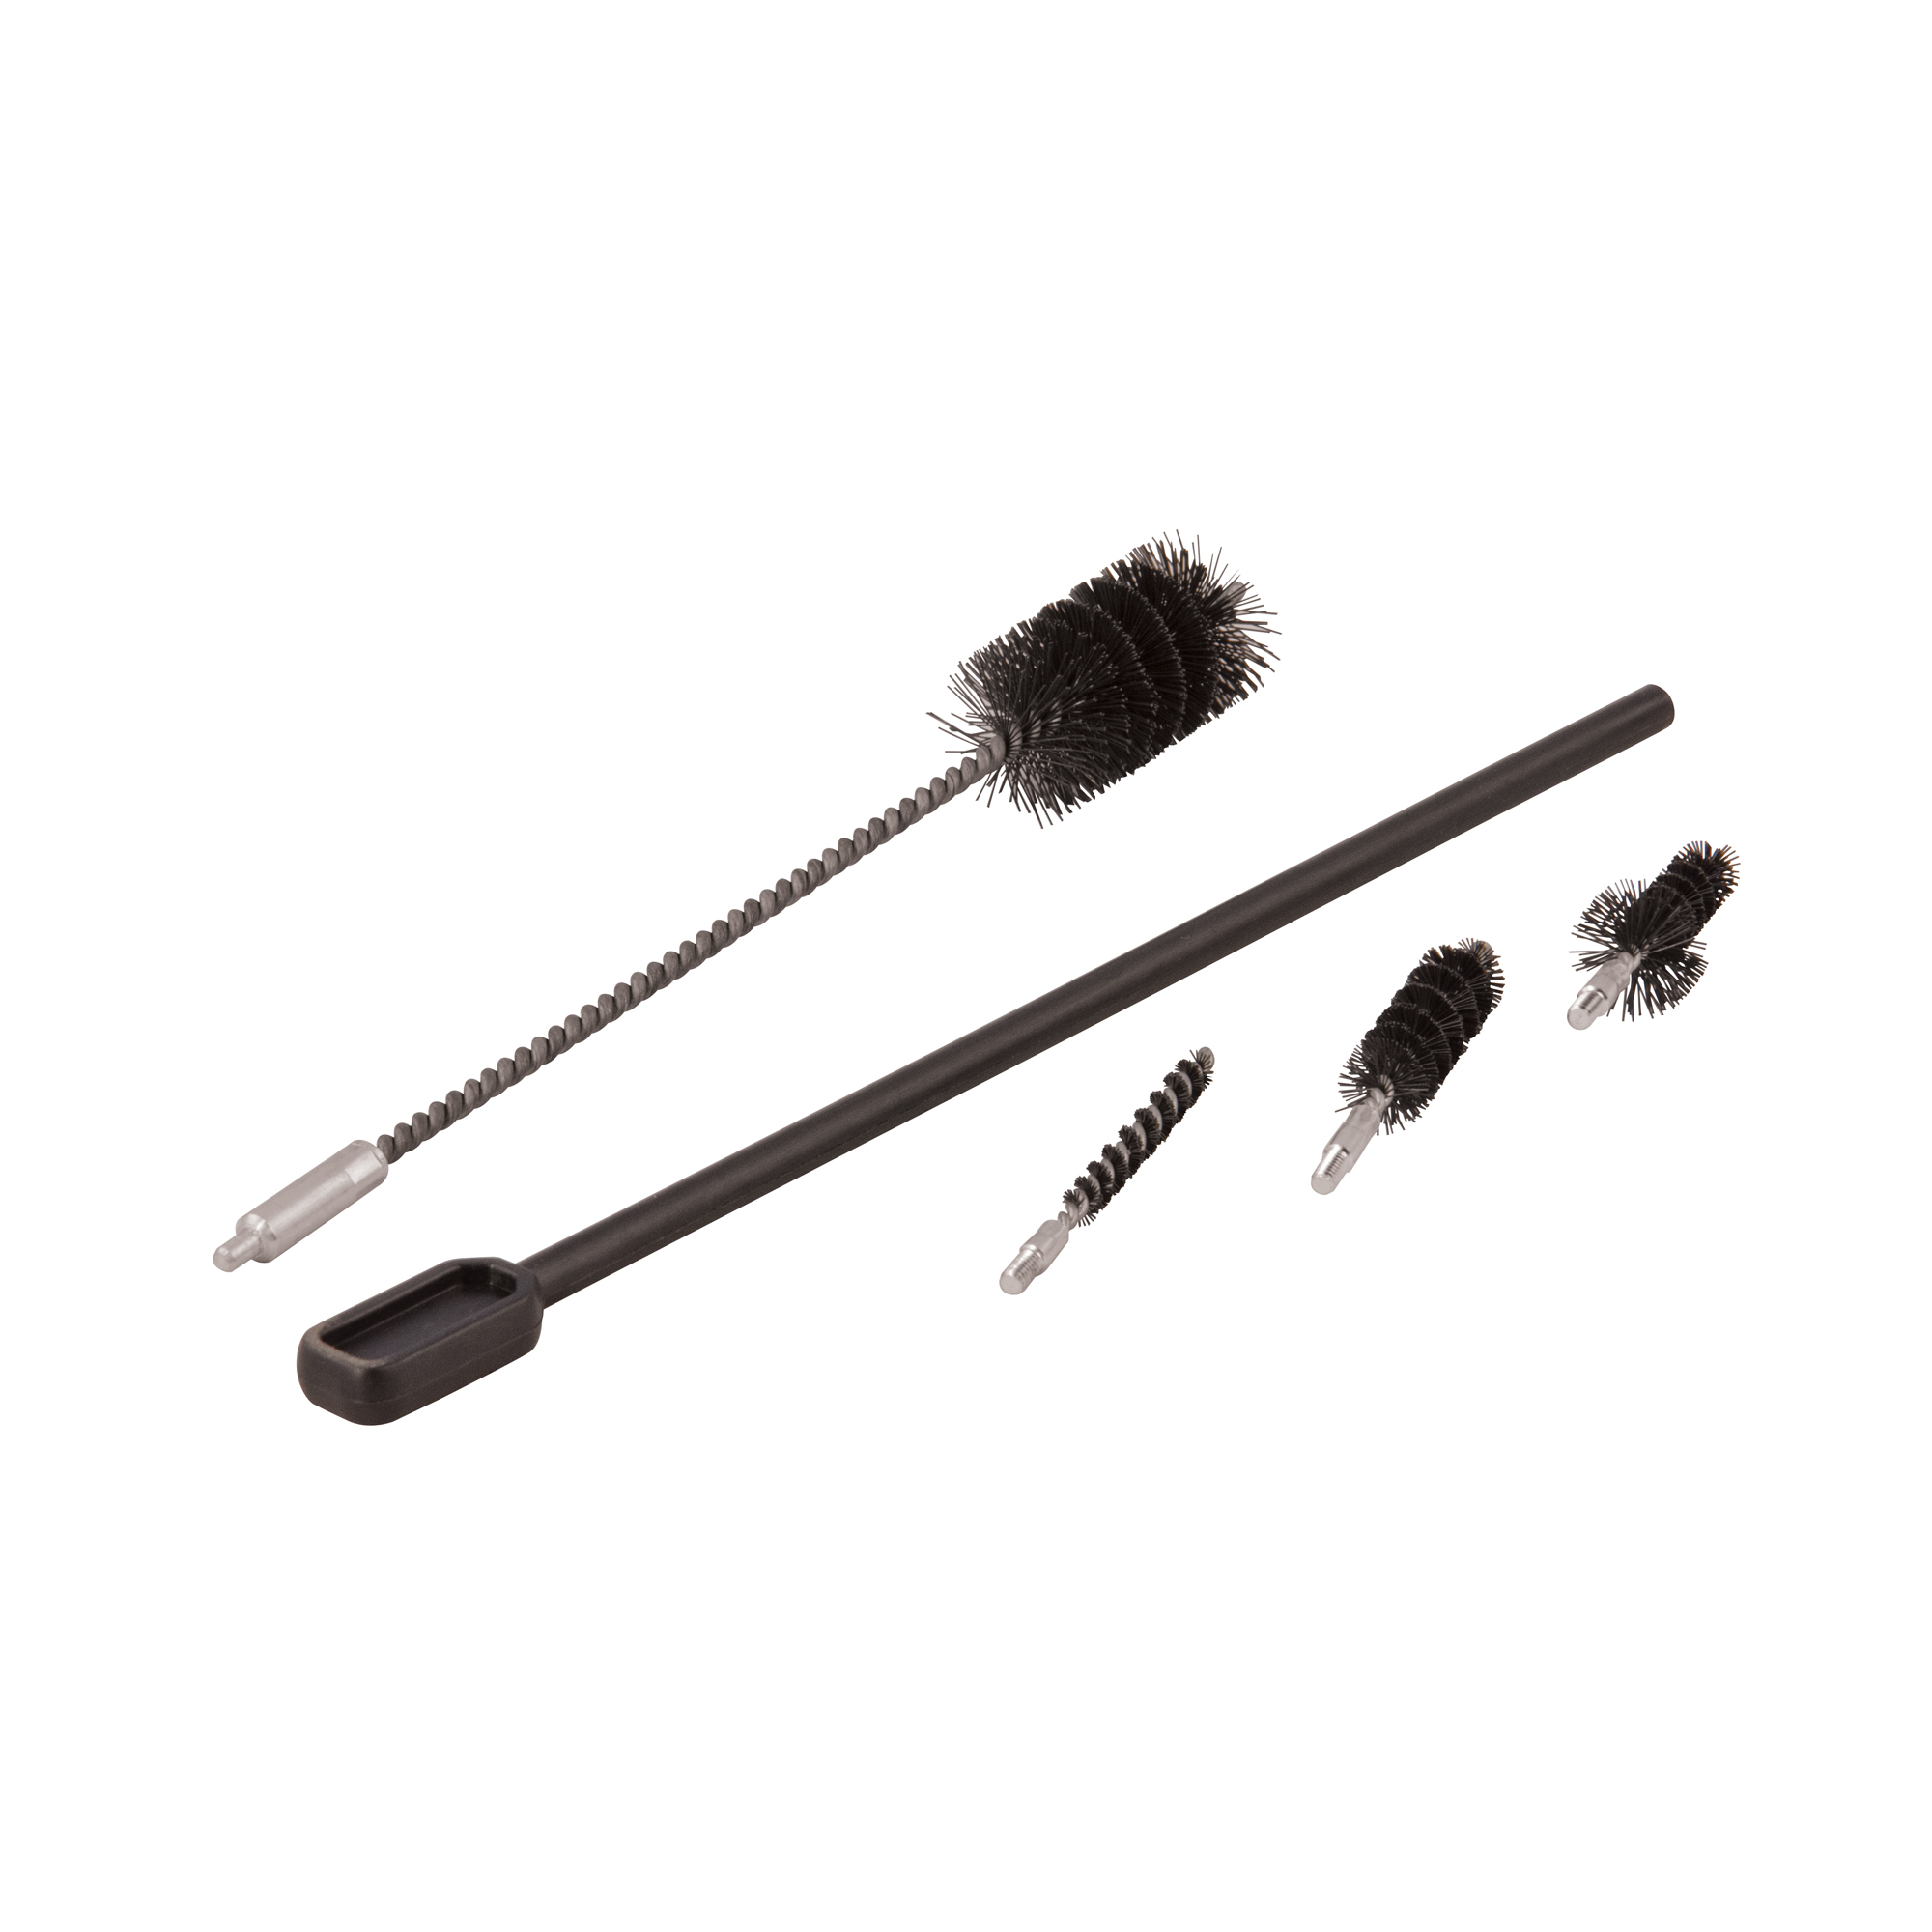 """The Wheeler Delta Series AR-15 Complete Brush Set is specifically designed for cleaning your AR-15. The brushes are made of a high quality stiff Nylon"""" spun around steel cores for added stability. The brushes feature an 8 x 32 thread that fit on the included cleaning handle or any 8 x 32 cleaning rod. The brush set has everything you need to clean your rifle"""" plus everything you need to keep your magazines clean and running reliably."""